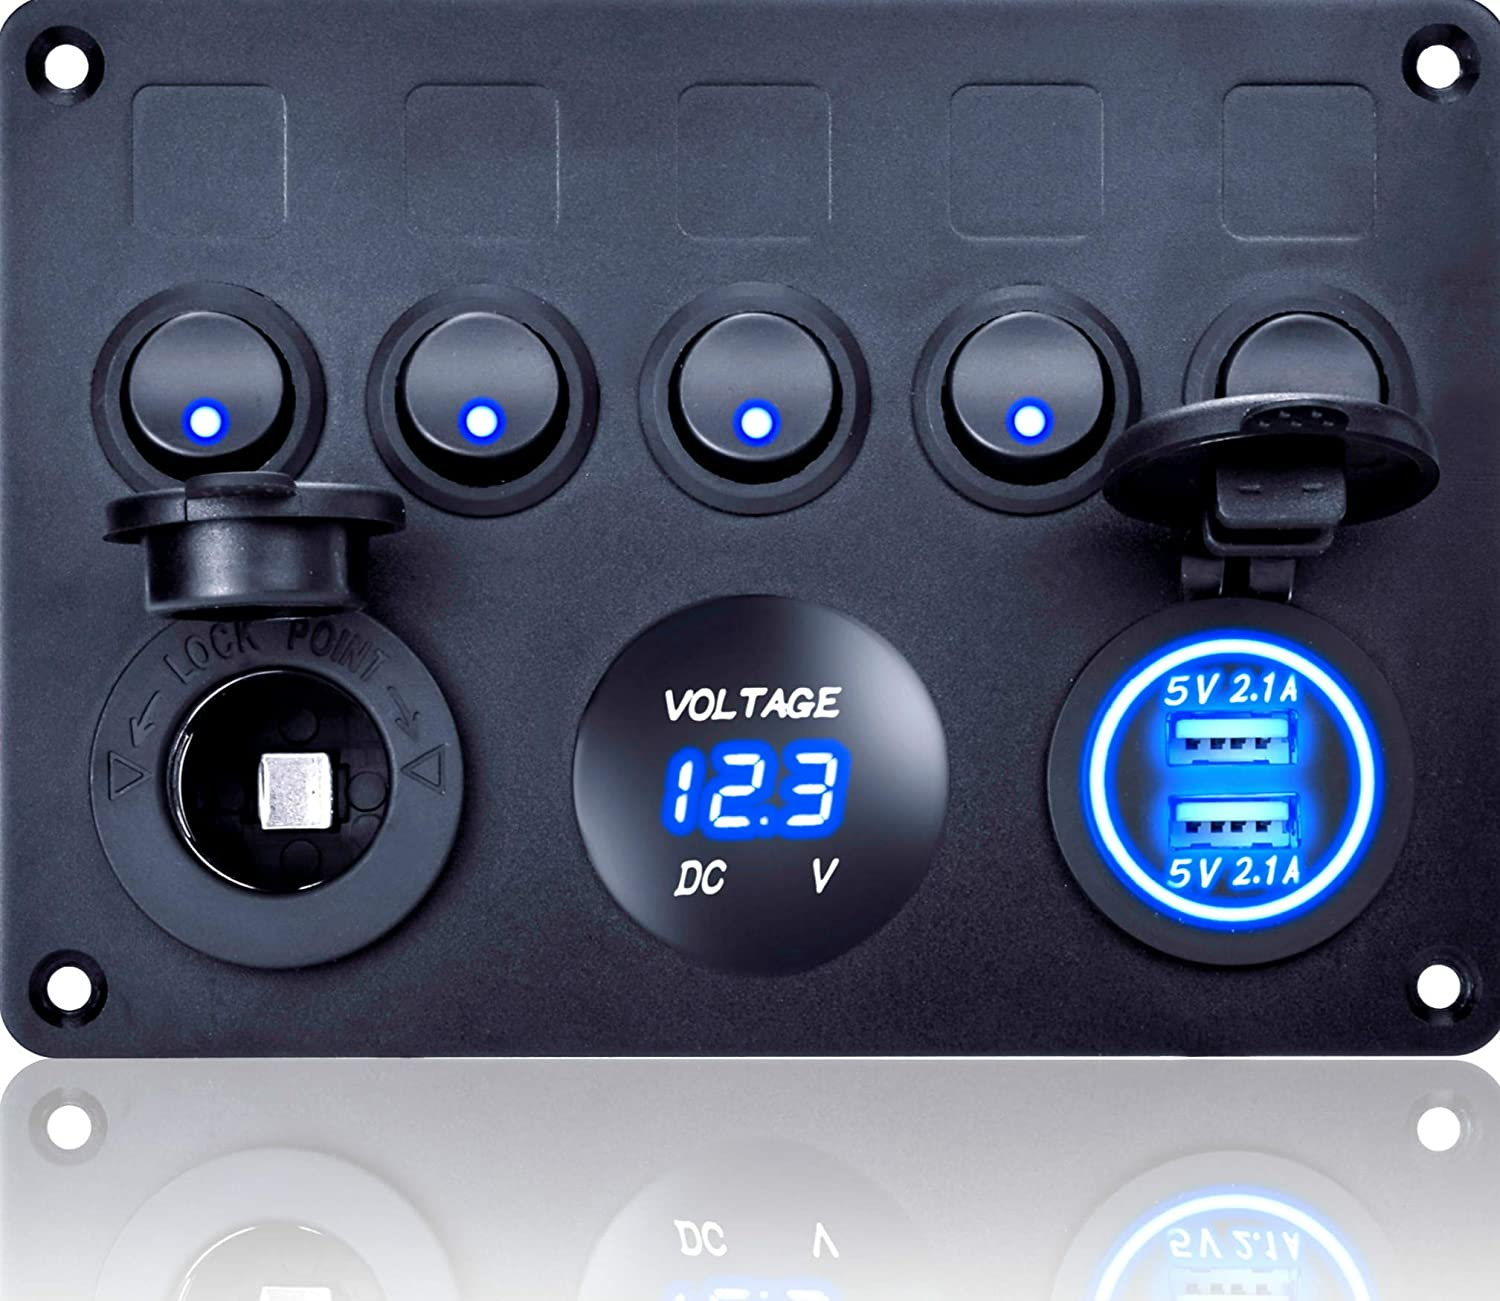 MKING Dual USB Socket Charger 2.1A&2.1A LED Voltmeter/6 Gang Marine Ignition Toggle Rocker Switch Panel for for RV Car Boat Vehicle Truck Trailer Yacht Ship SUV Bus Caravan